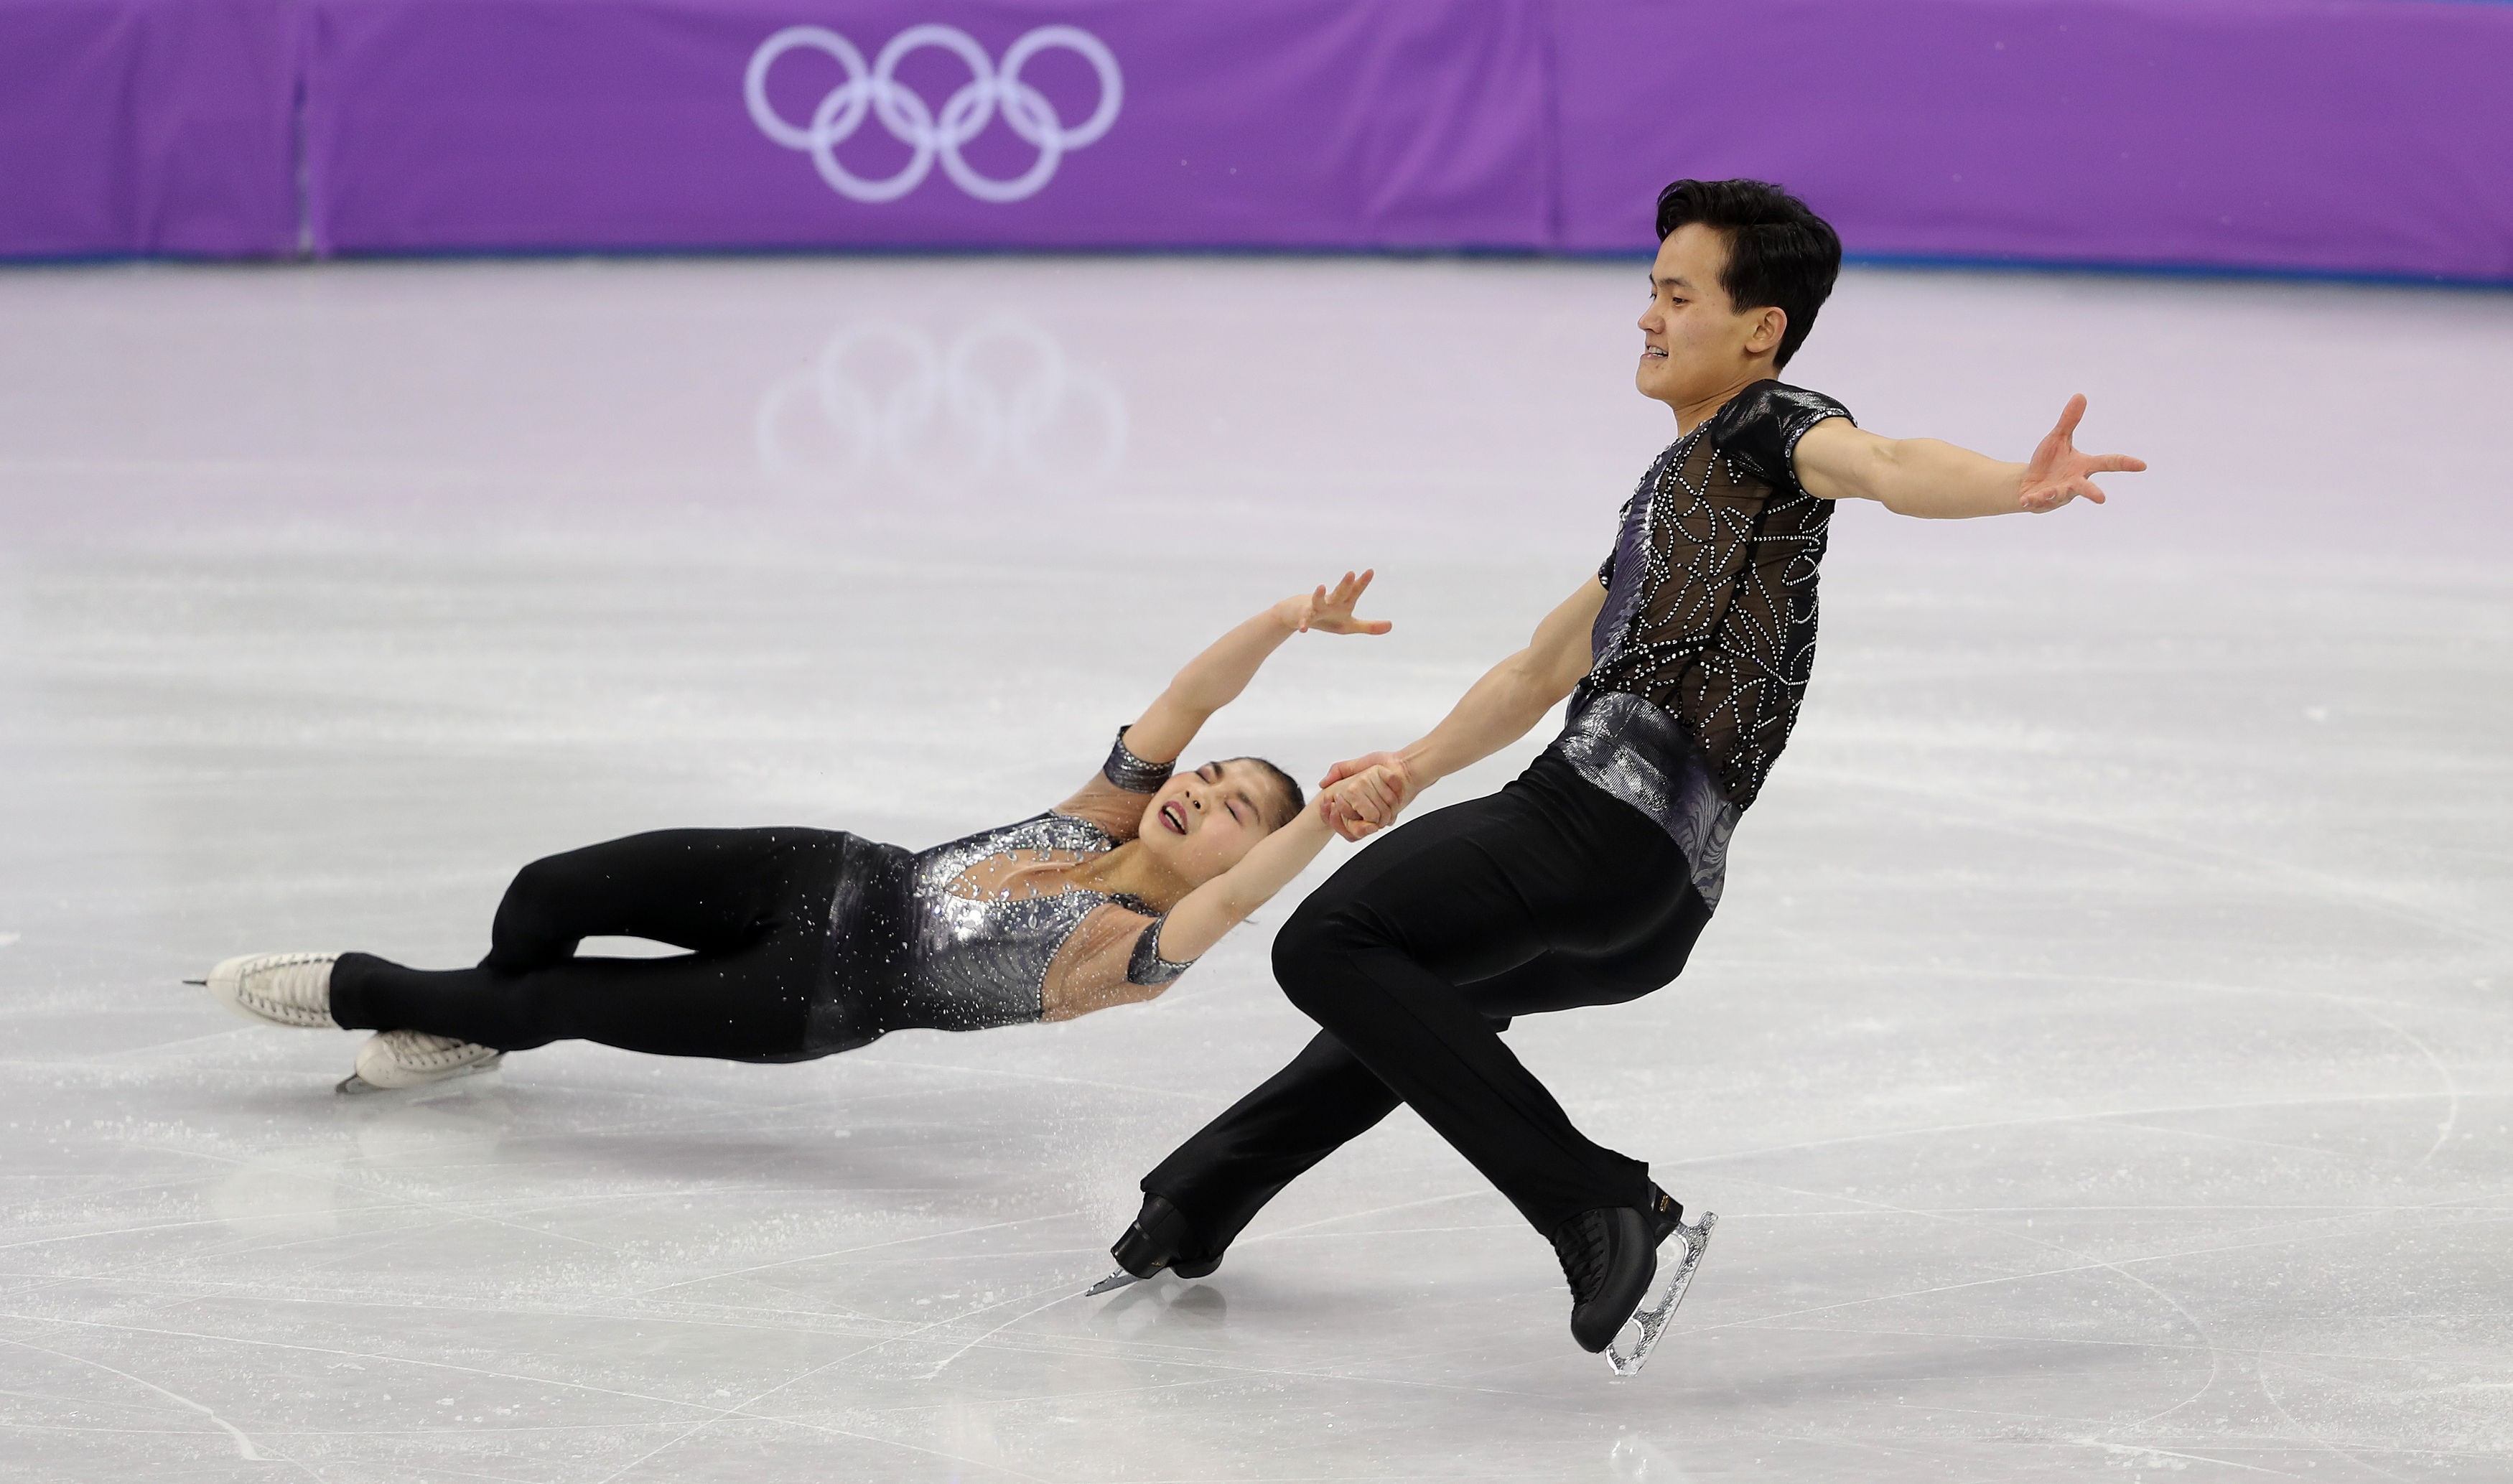 Tae Ok Ryom and Ju Sik Kim of North Korea in the Pairs Figures Skating at the Gangneung Ice Arena during day five of the PyeongChang 2018 Winter Olympic Games in South Korea.